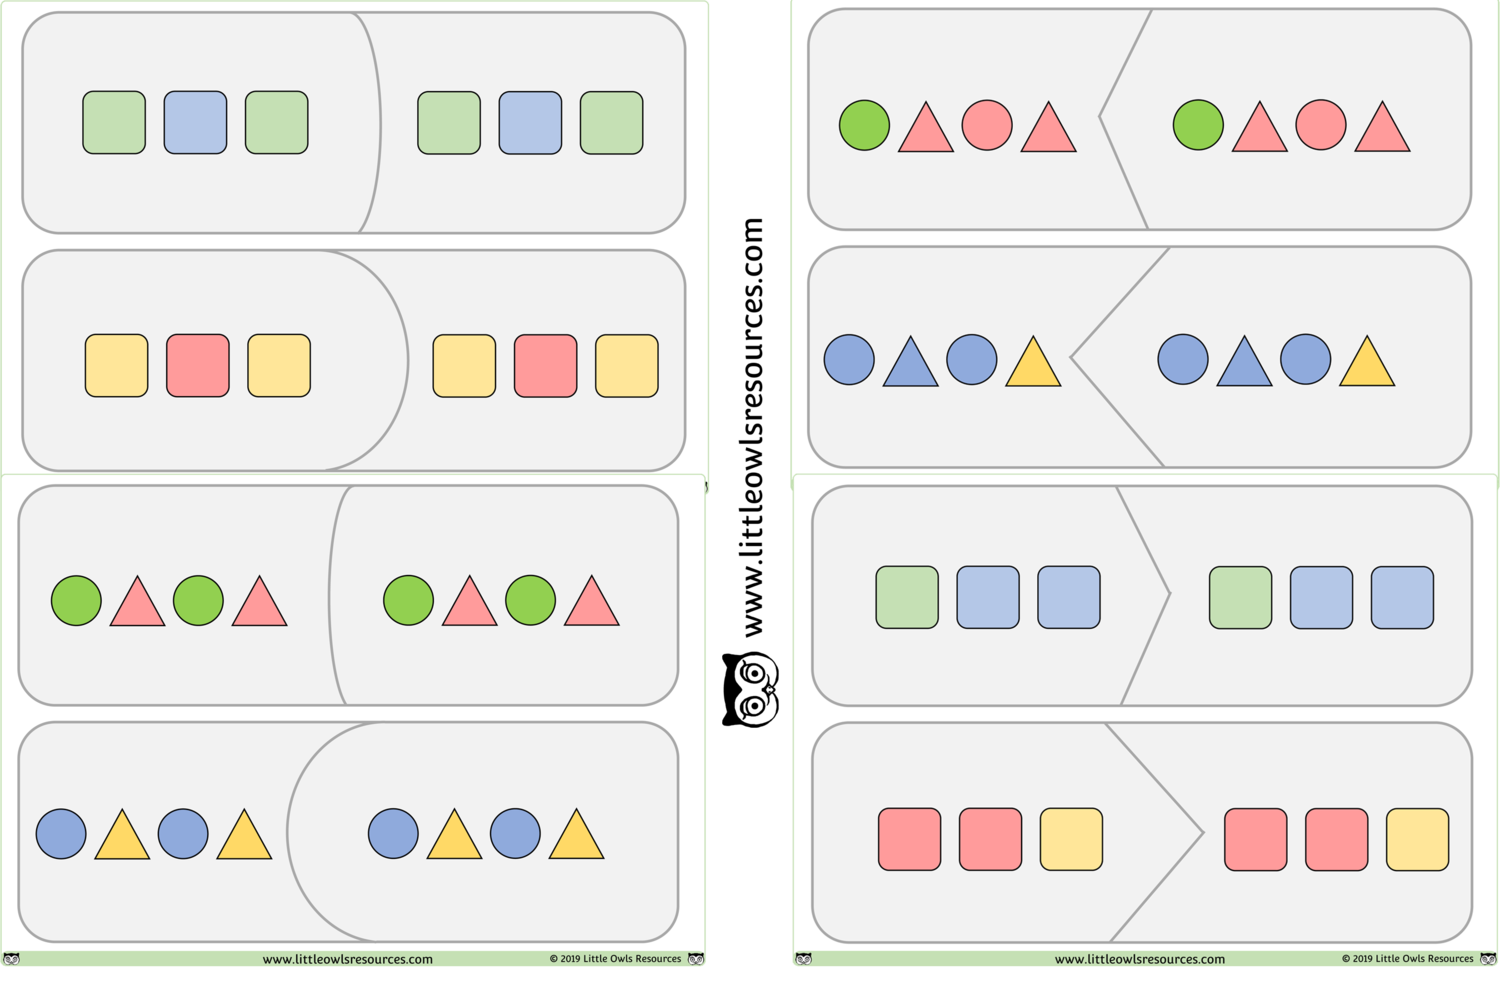 Free Pattern Match Game Printable Early Years Ey Eyfs